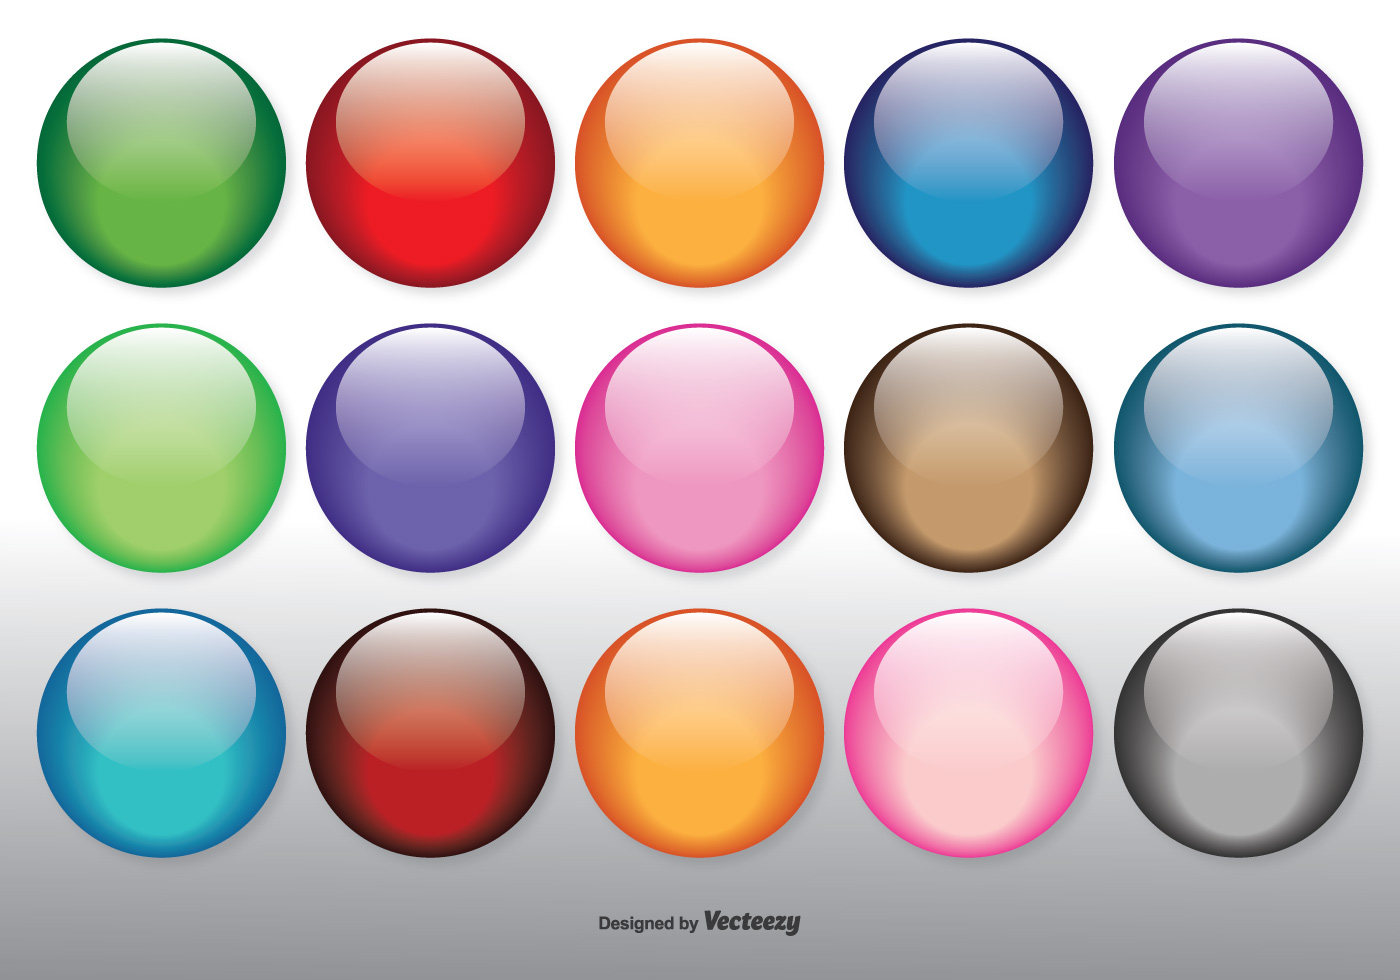 Colorful Glossy Orbs Set Download Free Vector Art Stock